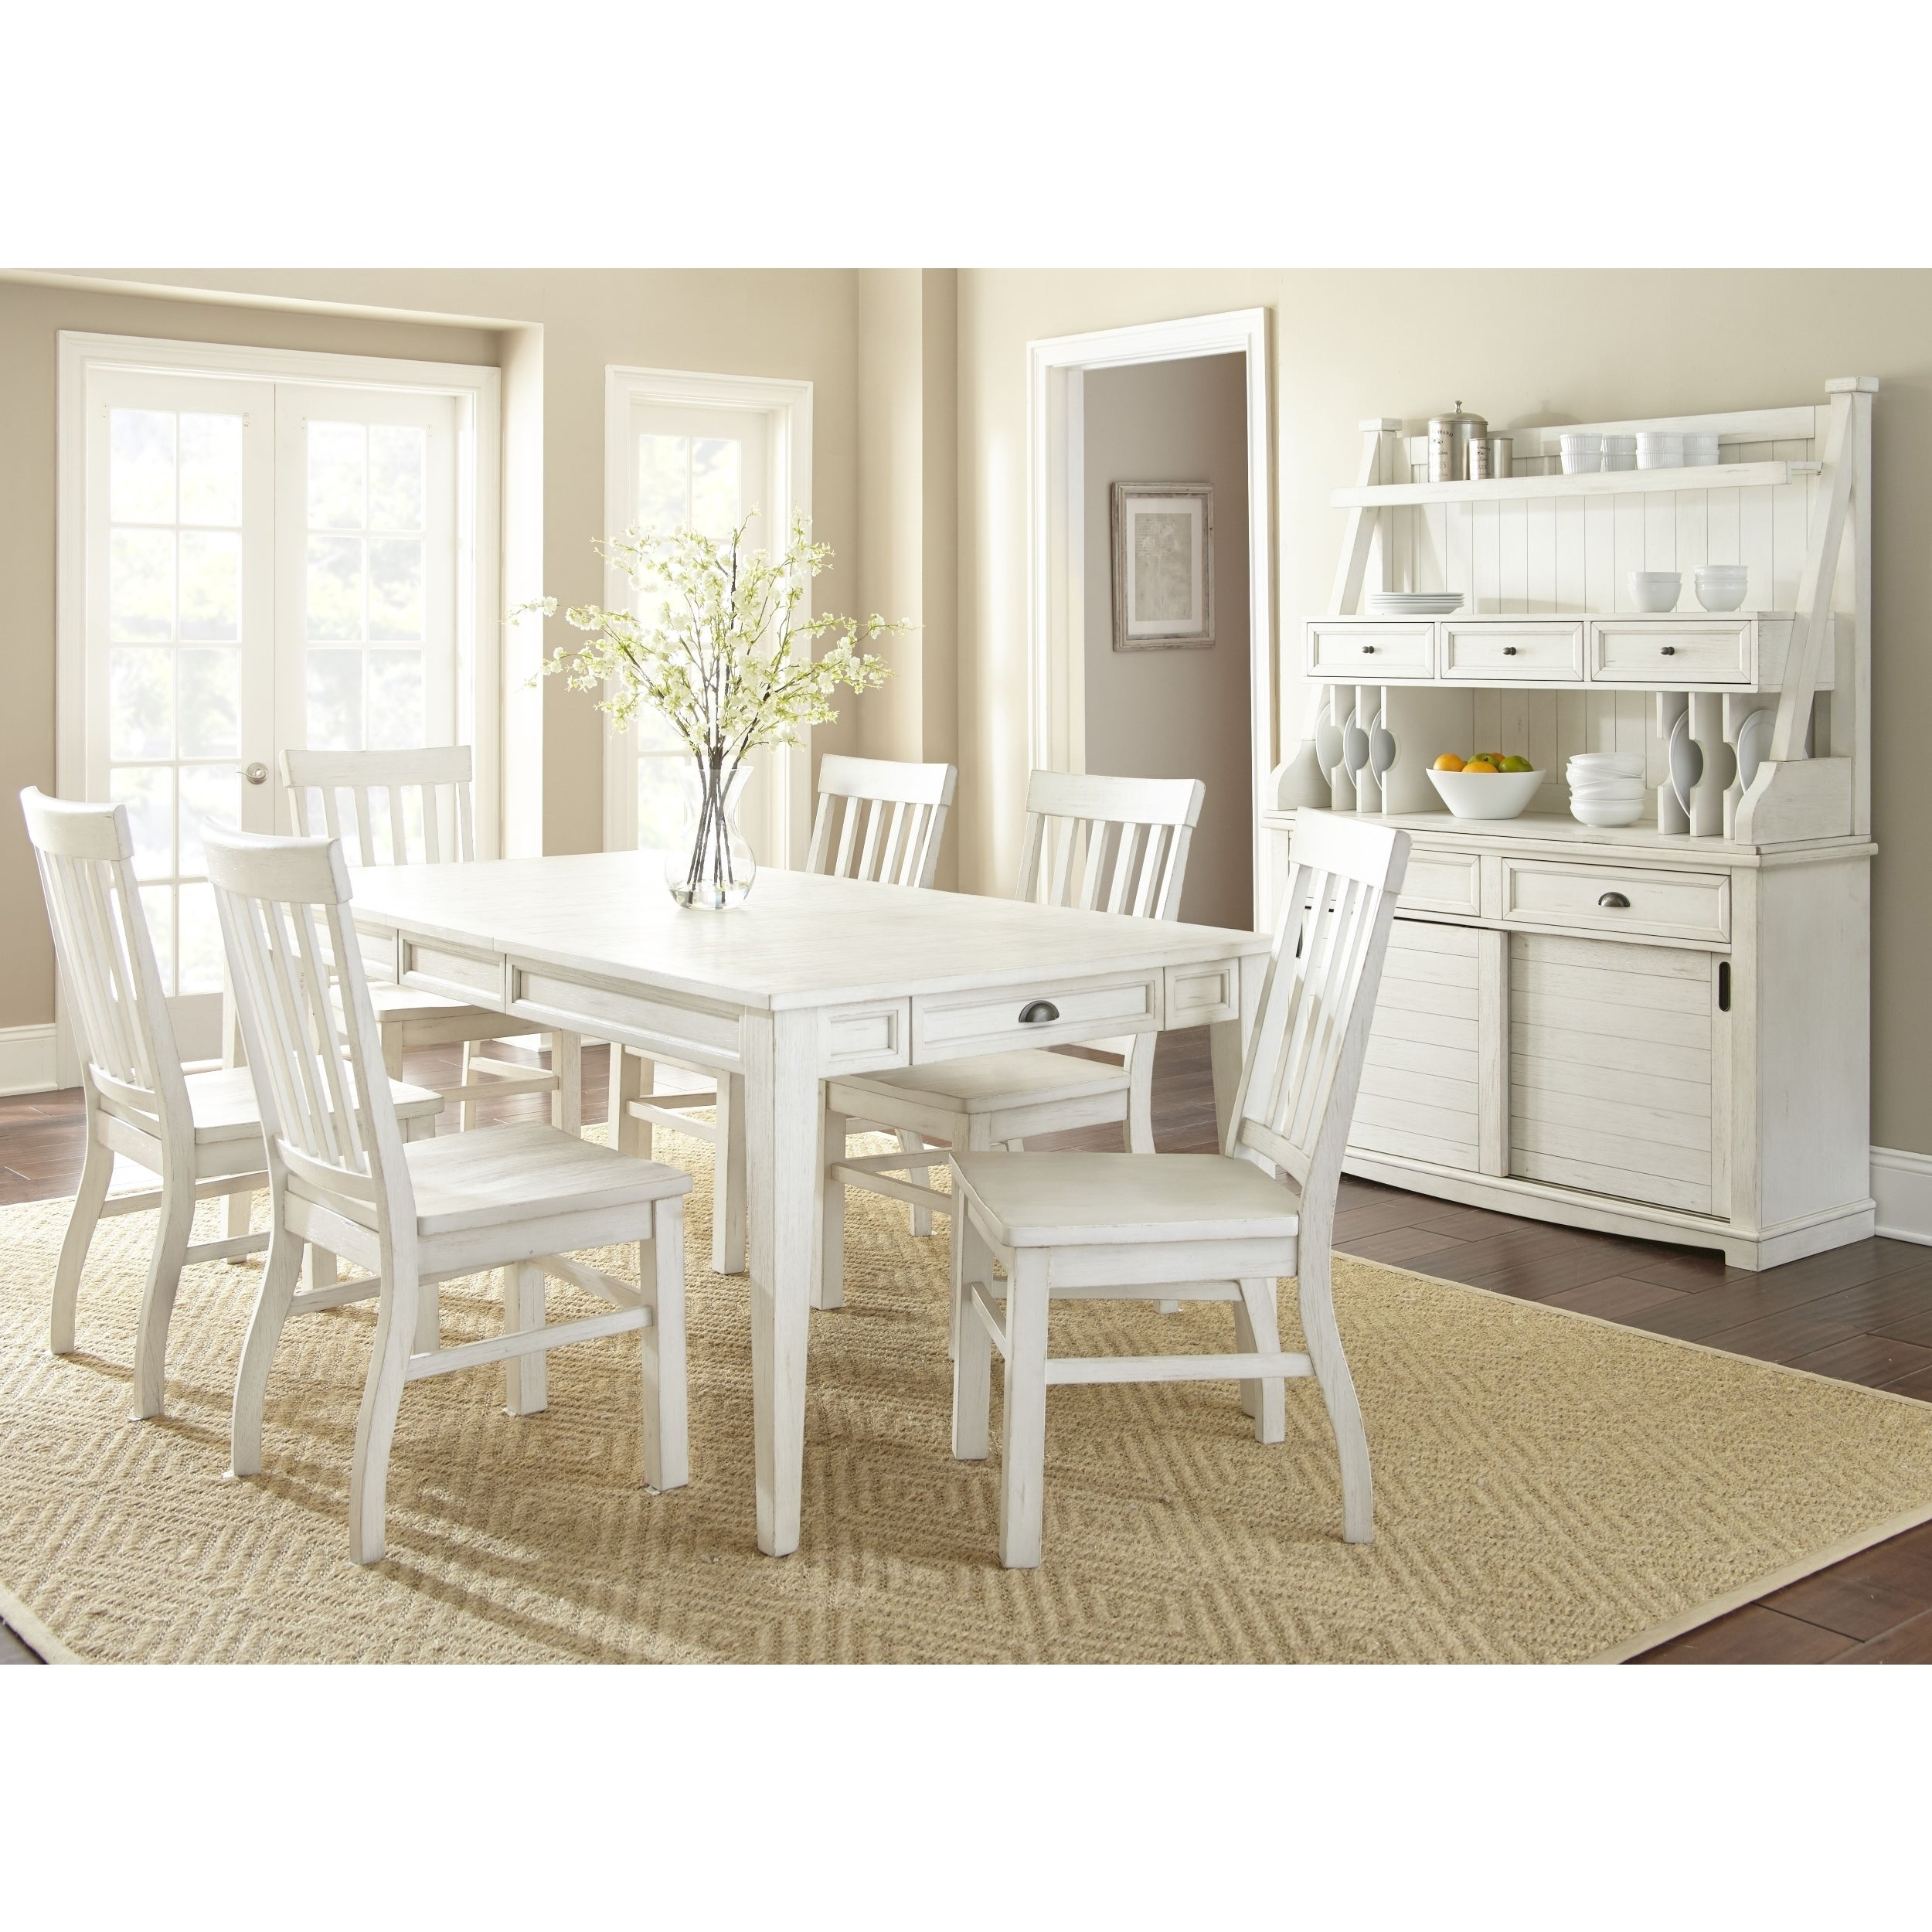 Shop Cottonville Antique White Farmhouse Dining Set With Chairs by ...